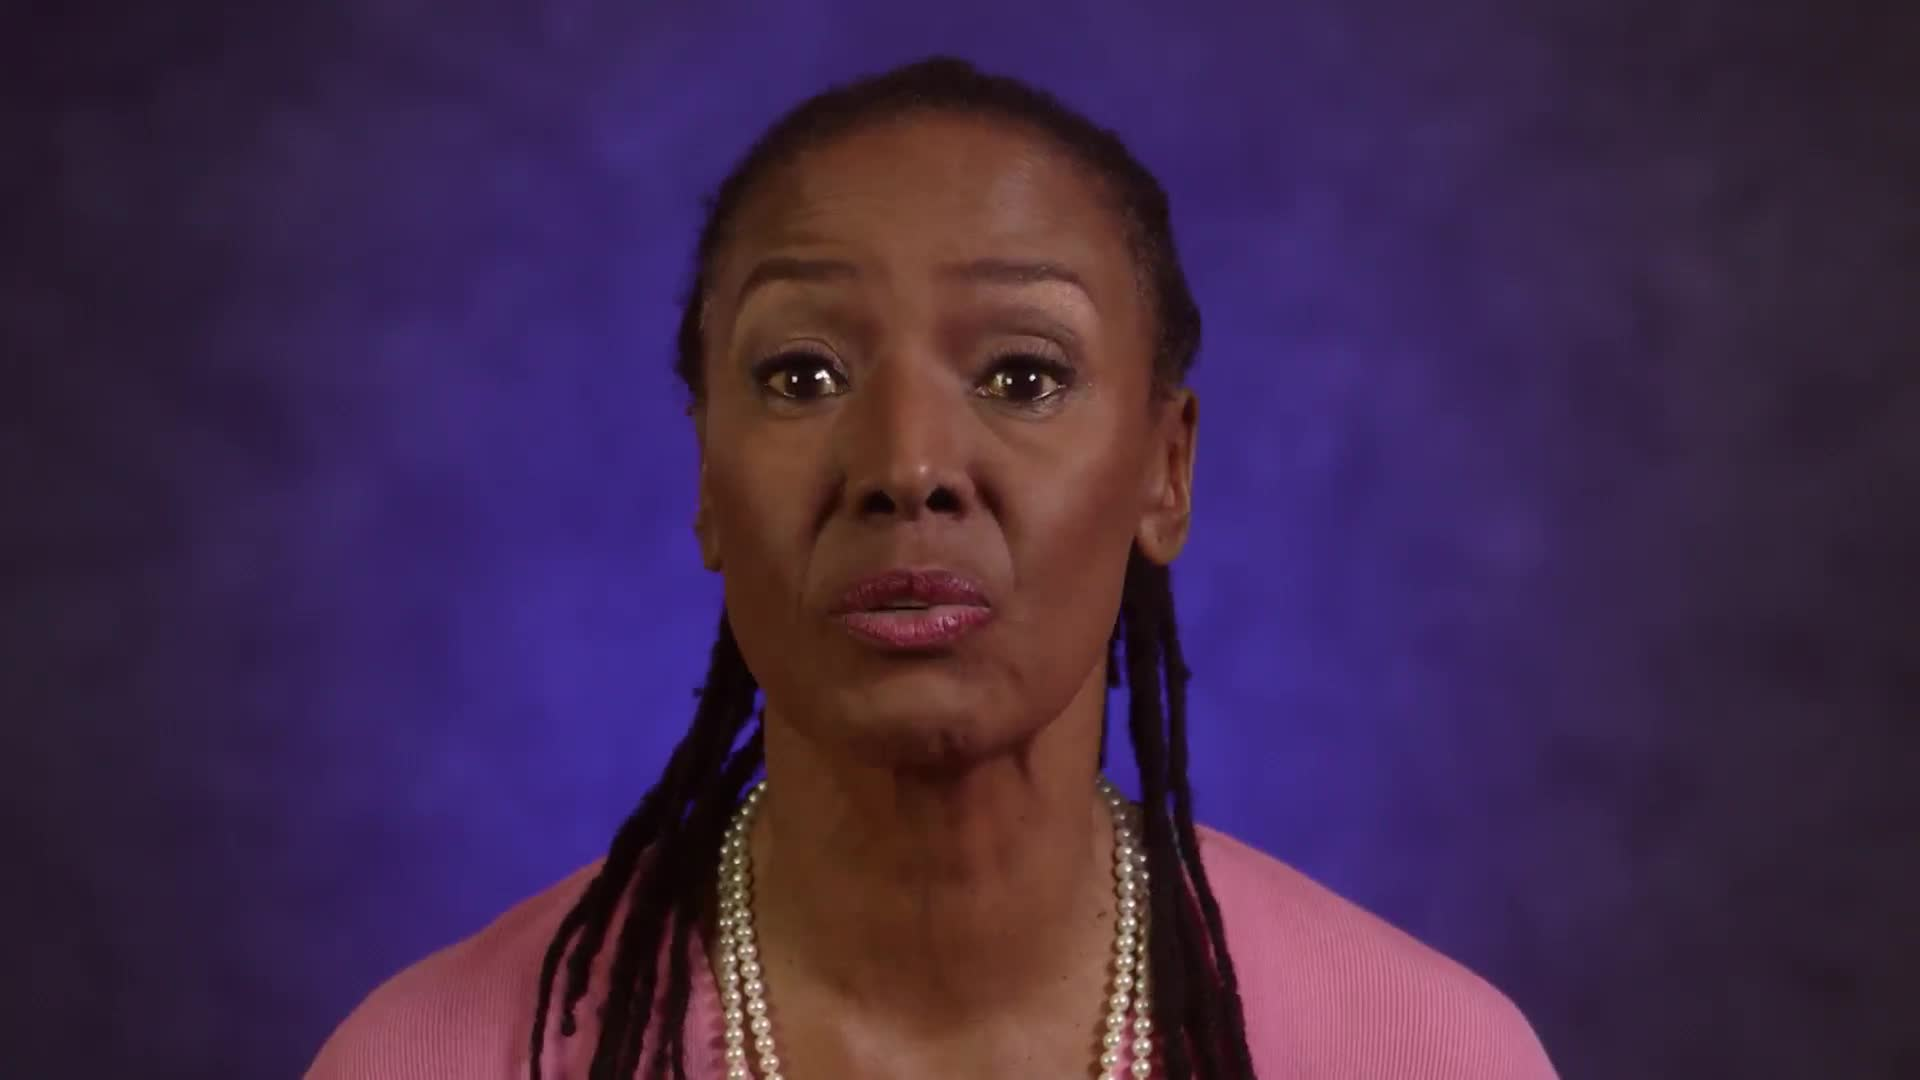 In a national PSA, B. Smith encourages people to register online to help find a treatment for Alzheimer's disease